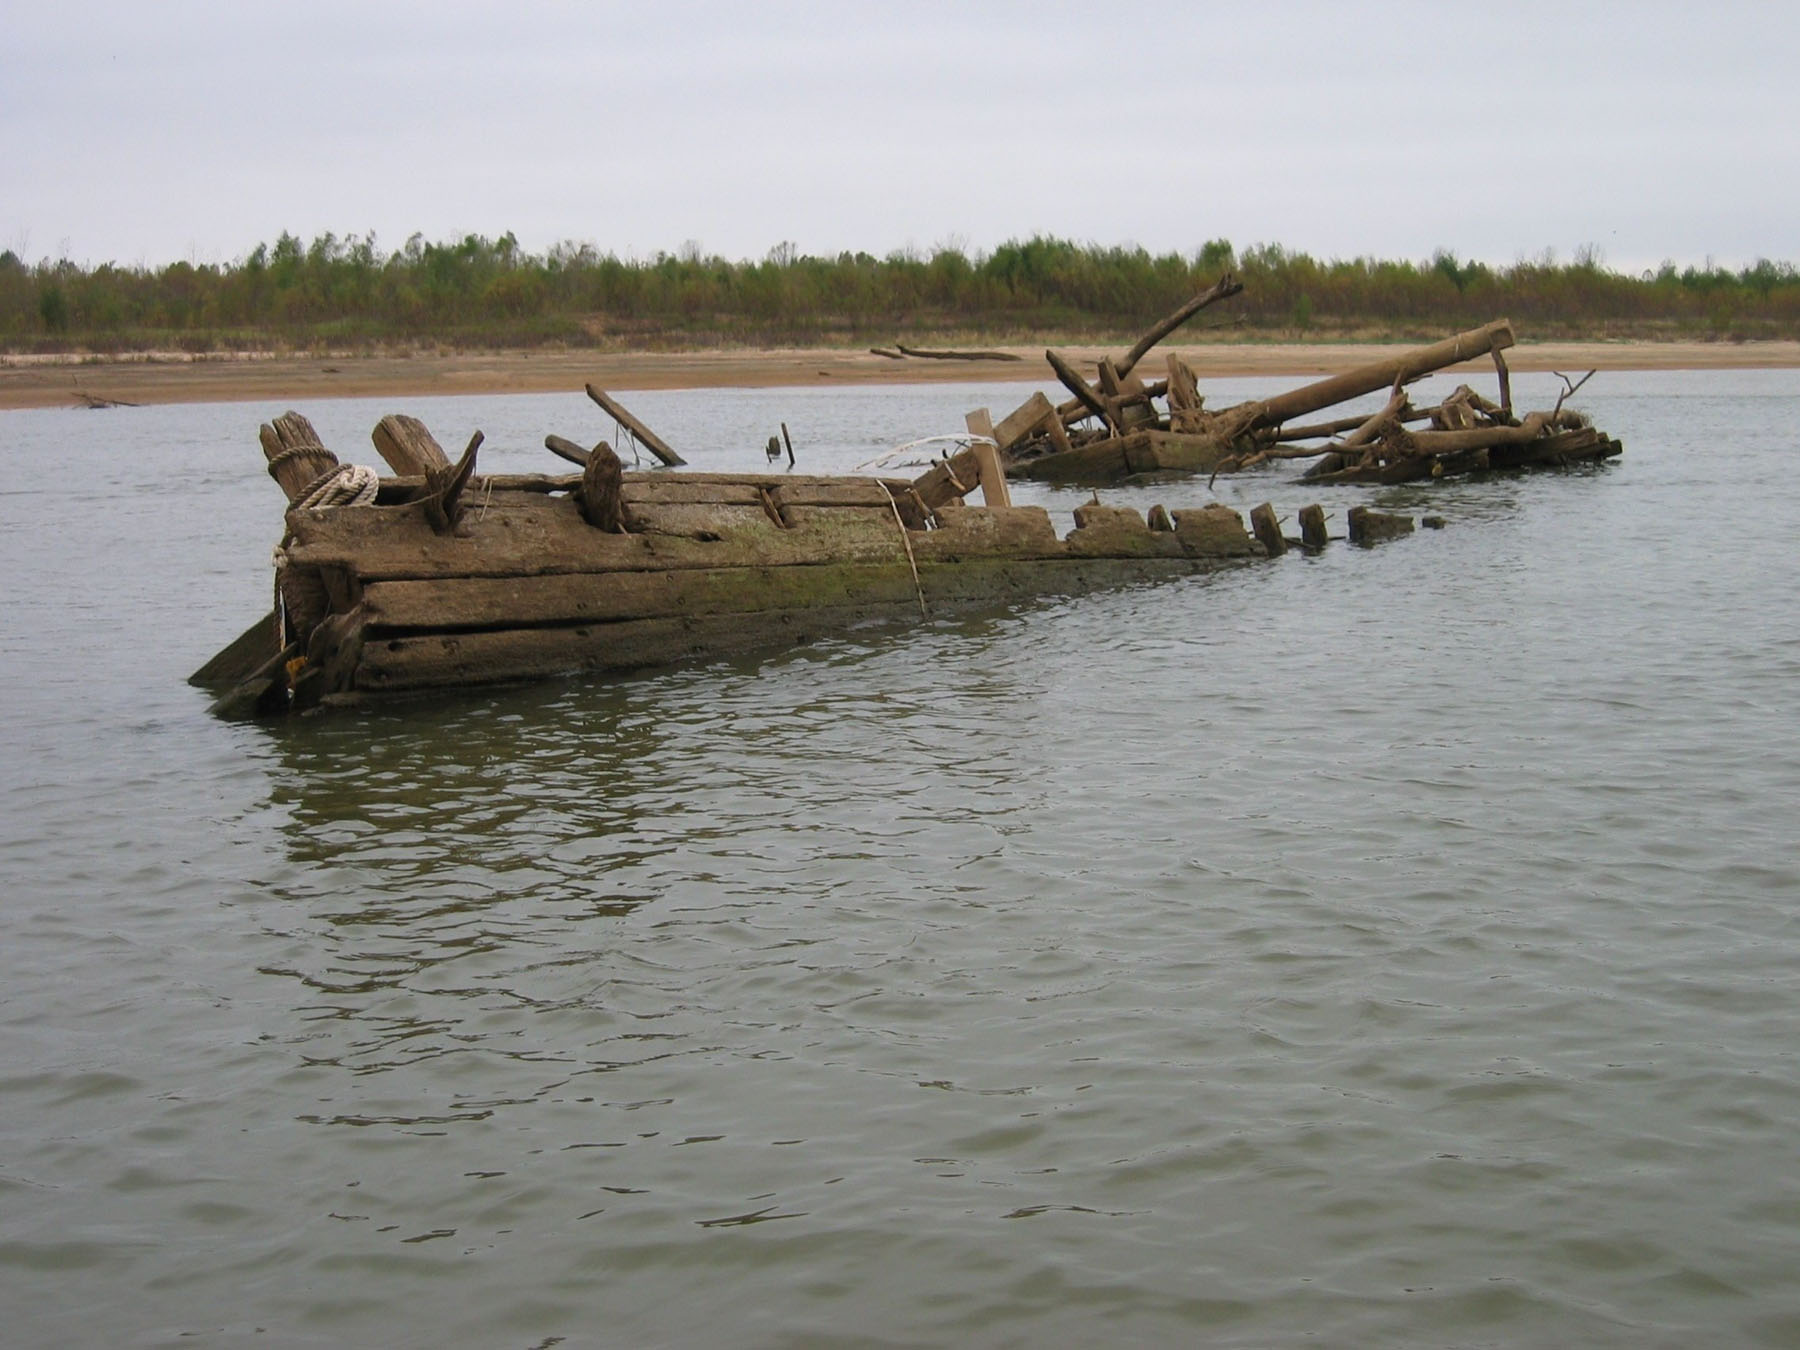 Wreckage of the steamboat Heroine in the Red River near Swink, Okla.